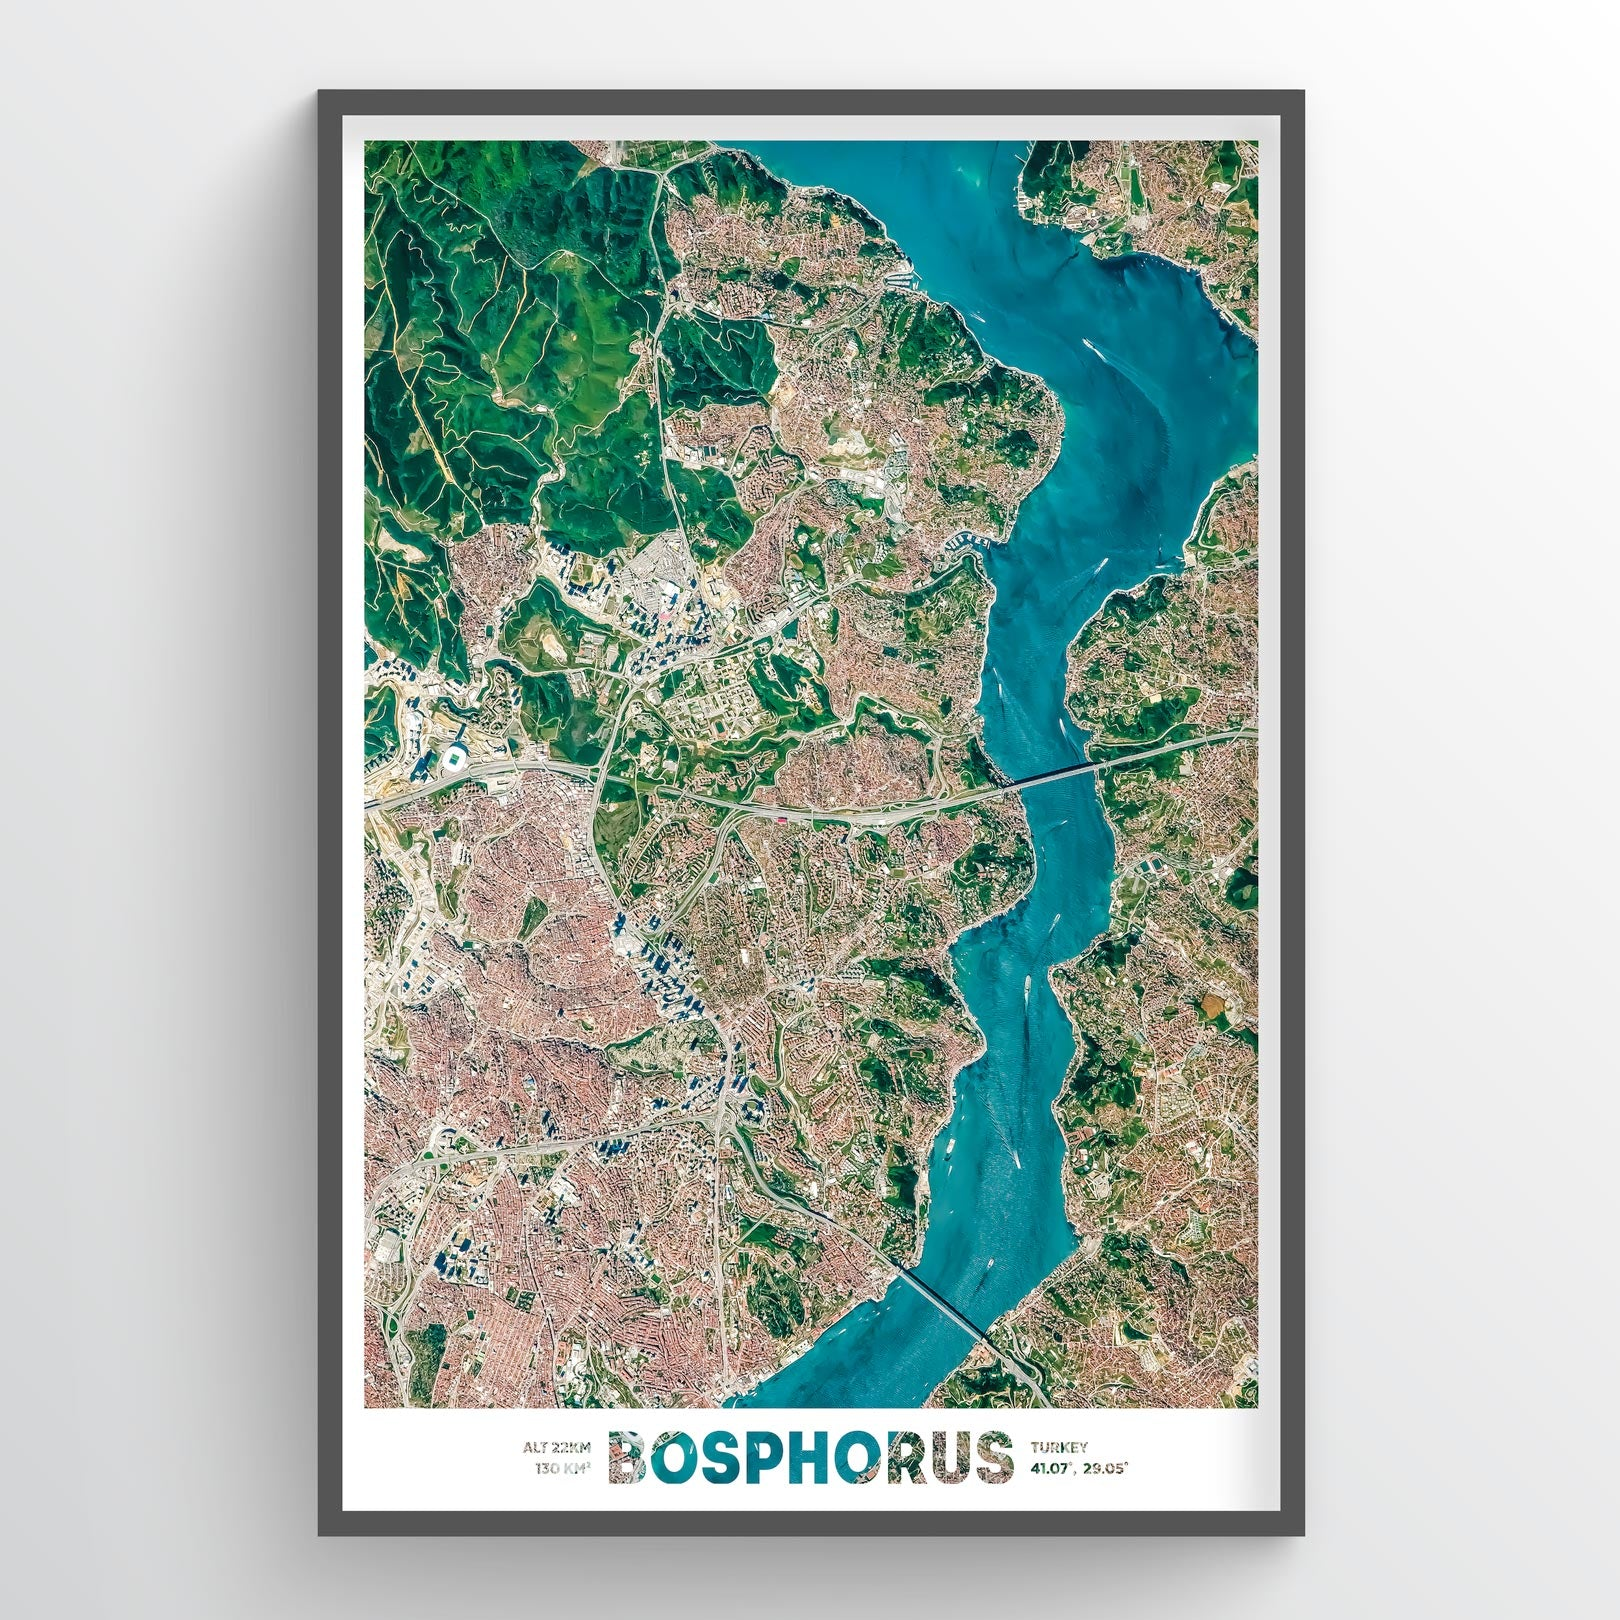 Bosphorus Earth Photography - Art Print - Point Two Design